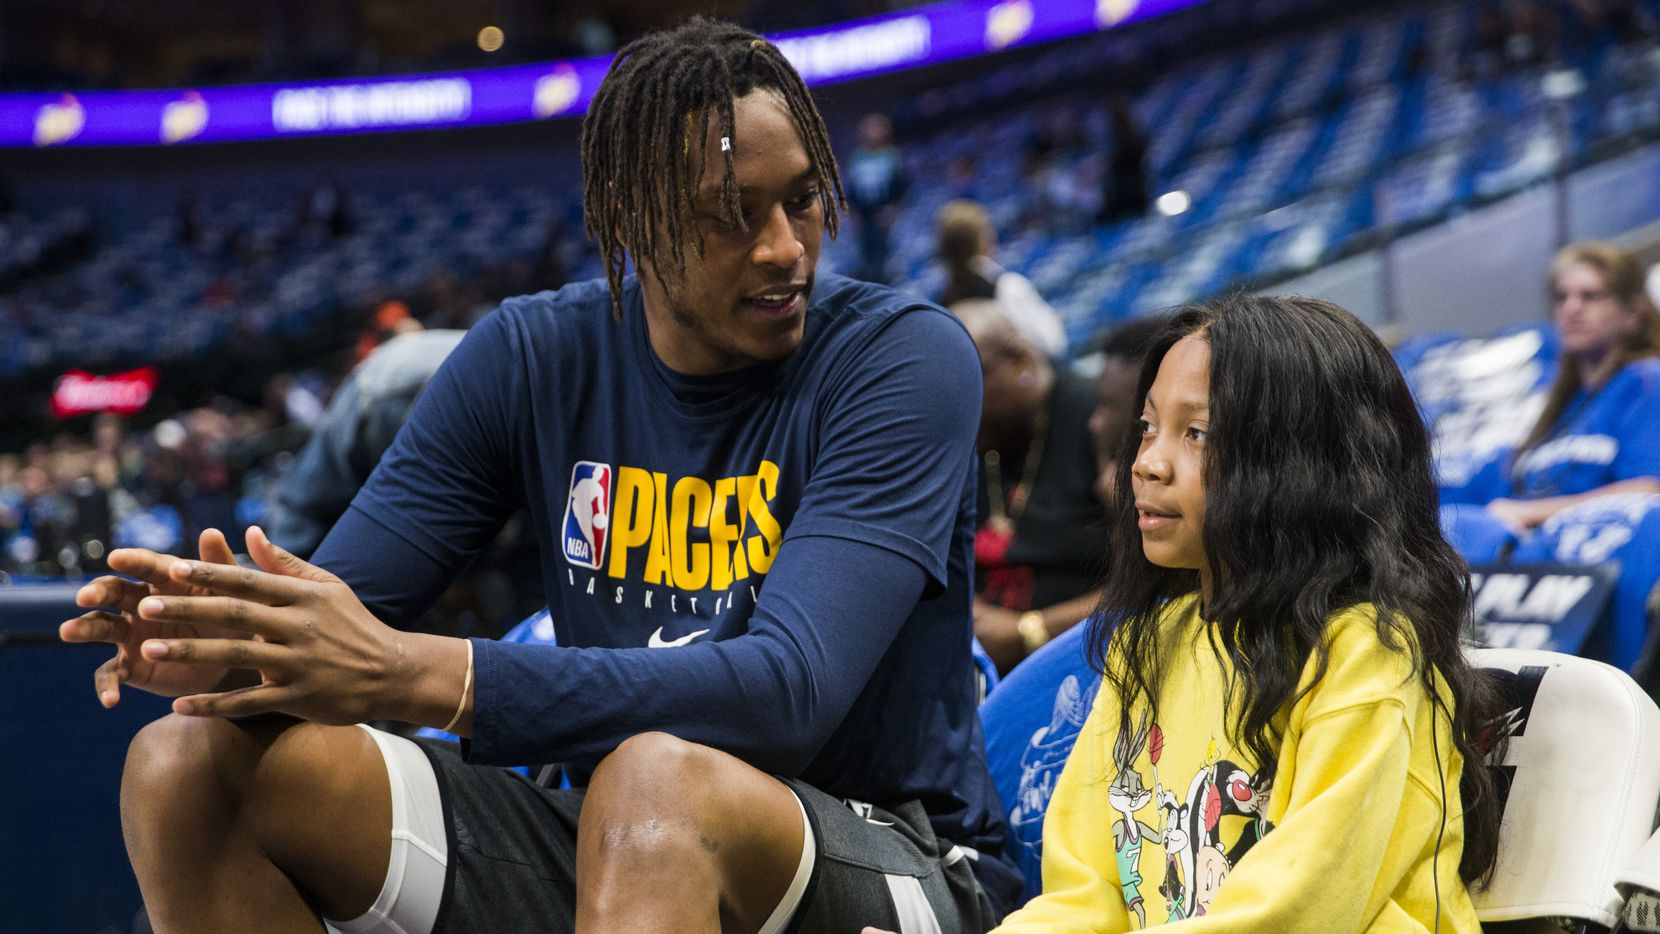 A'Myah Moon (right), 11, talks with Indiana Pacers center Myles Turner (33) before an NBA game between the Indiana Pacers and the Dallas Mavericks on Sunday, March 8, 2020 at American Airlines Center in Dallas. Moon, who has a rare cancer, was bullied at school. Turner and his family reached out to help and met with Moon before the game.